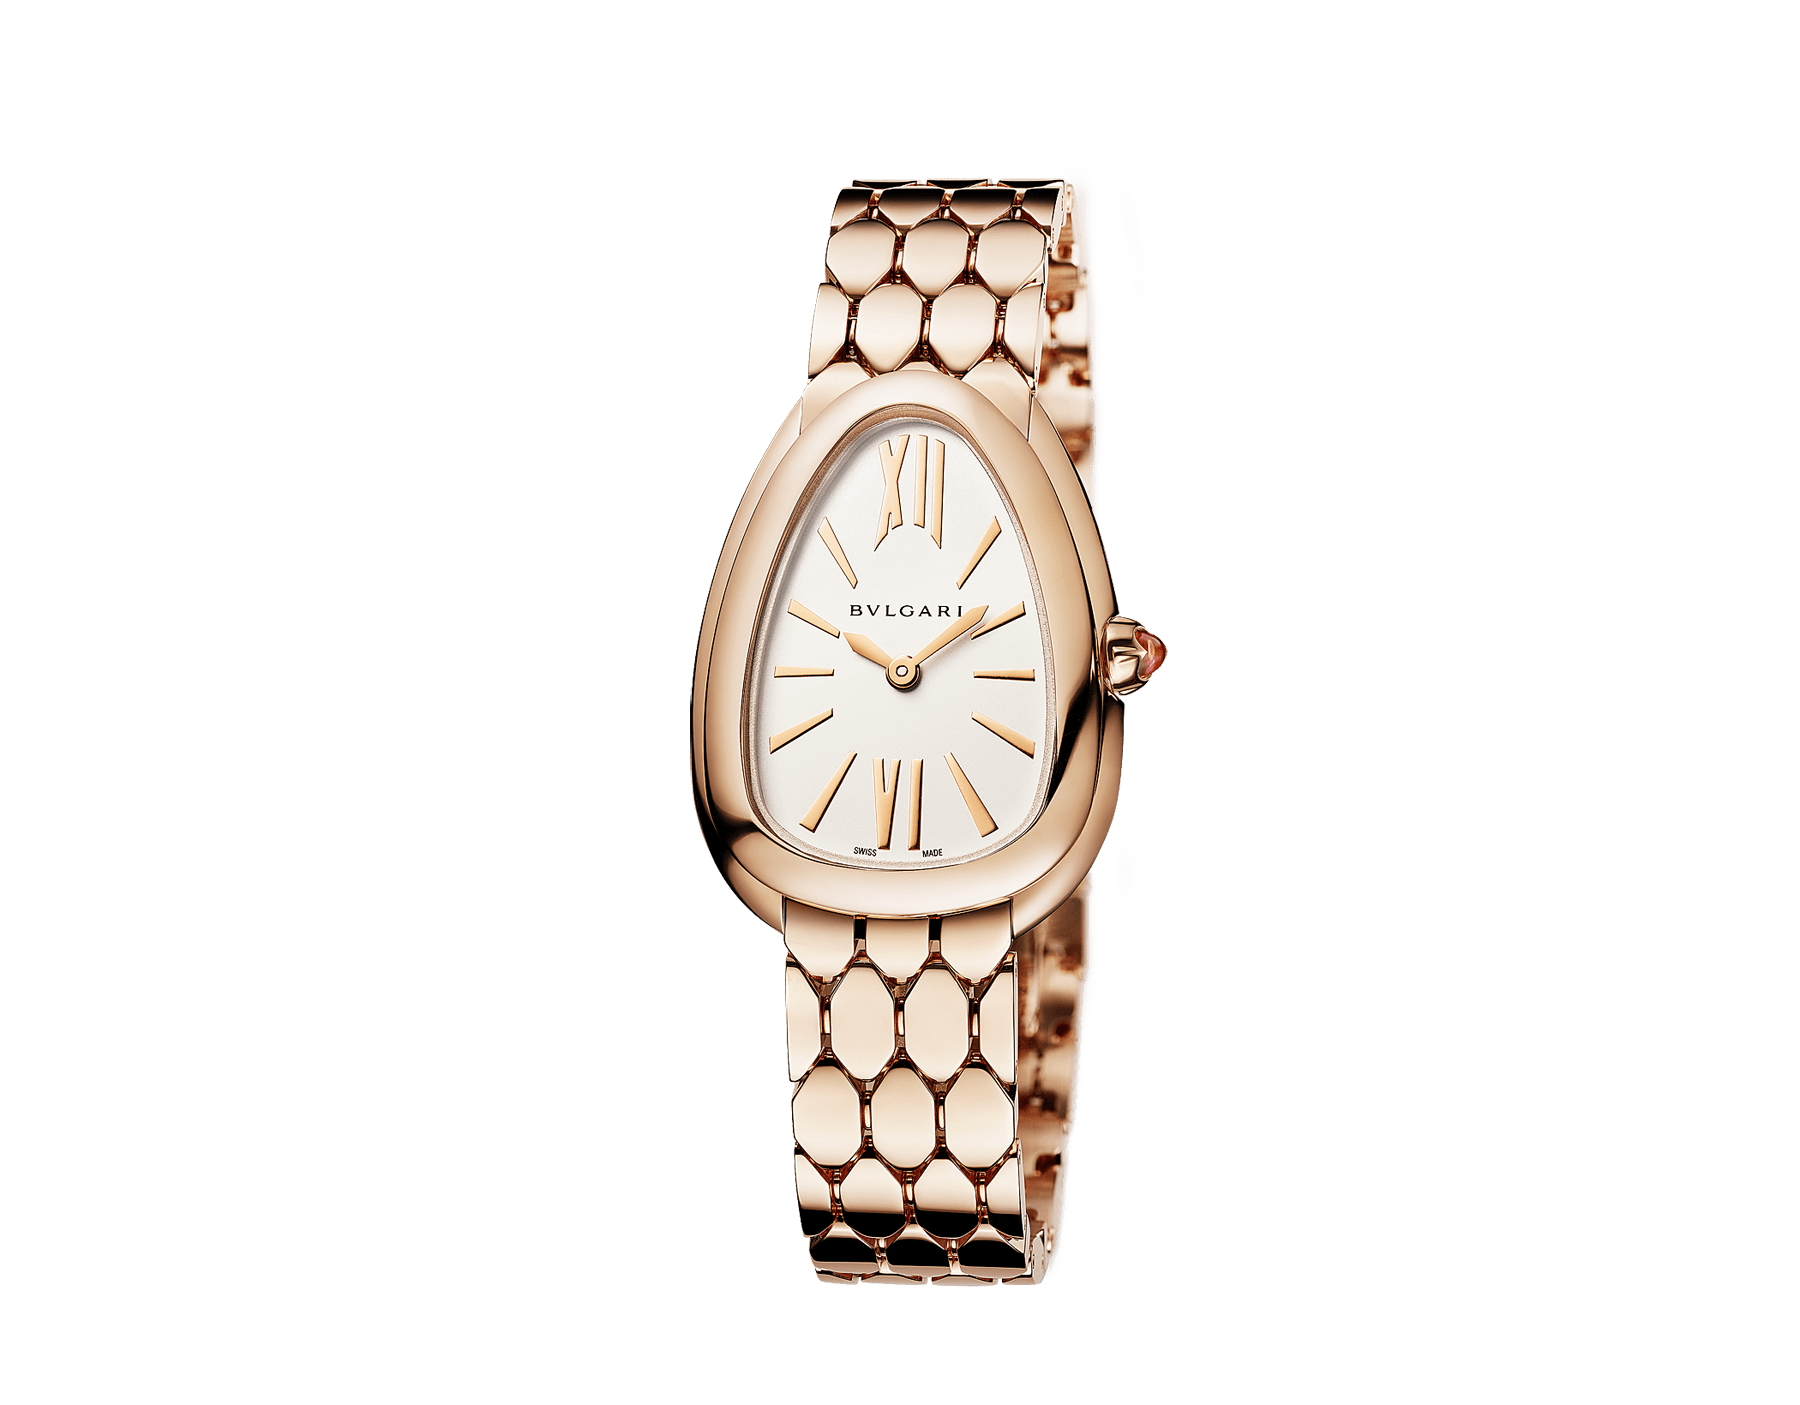 Serpenti Seduttori watch with 18 kt rose gold case, rose gold bracelet and a white silver opaline dial. 103145 image 2